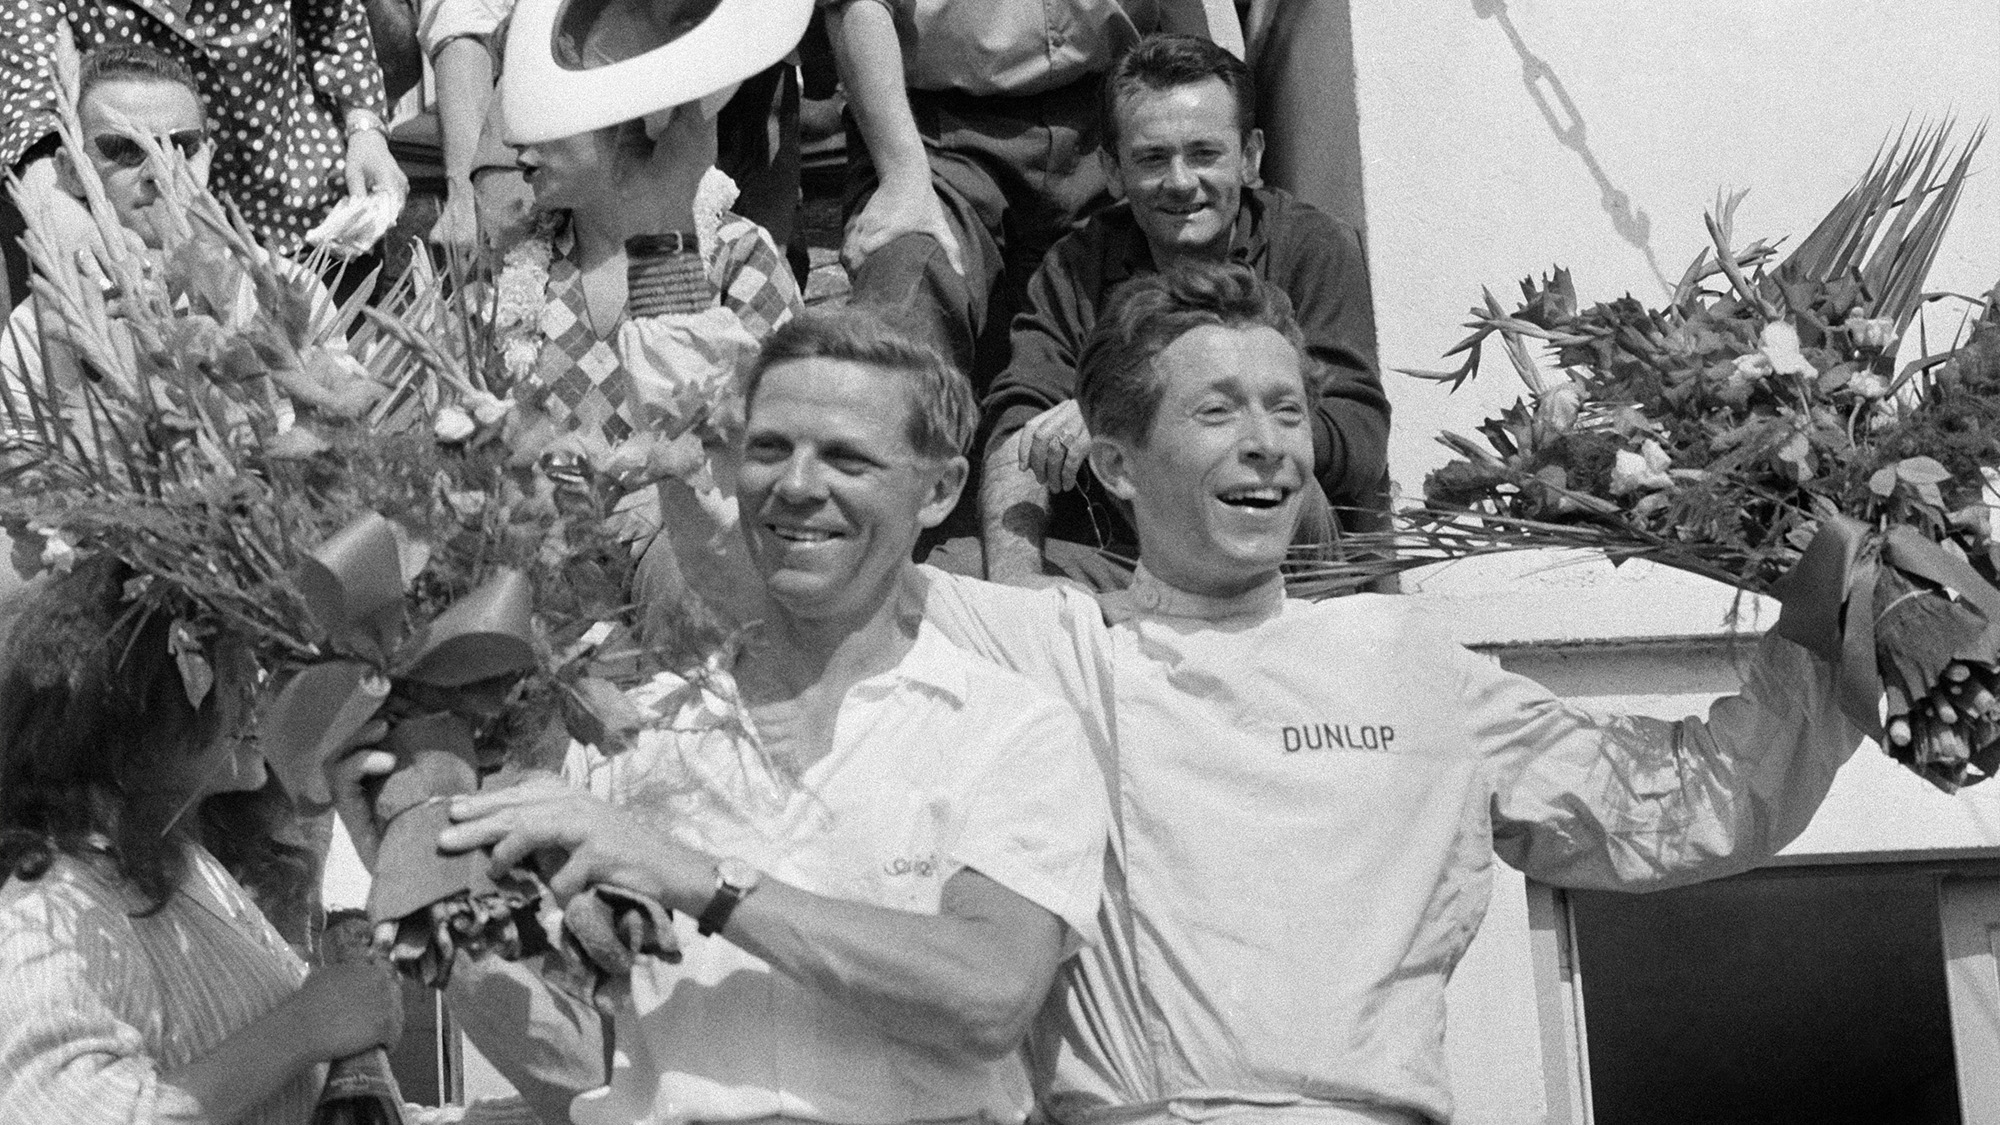 Paul Frere and Olivier Gendebien on the podium after winning the 1960 Le Mans 24 Hours